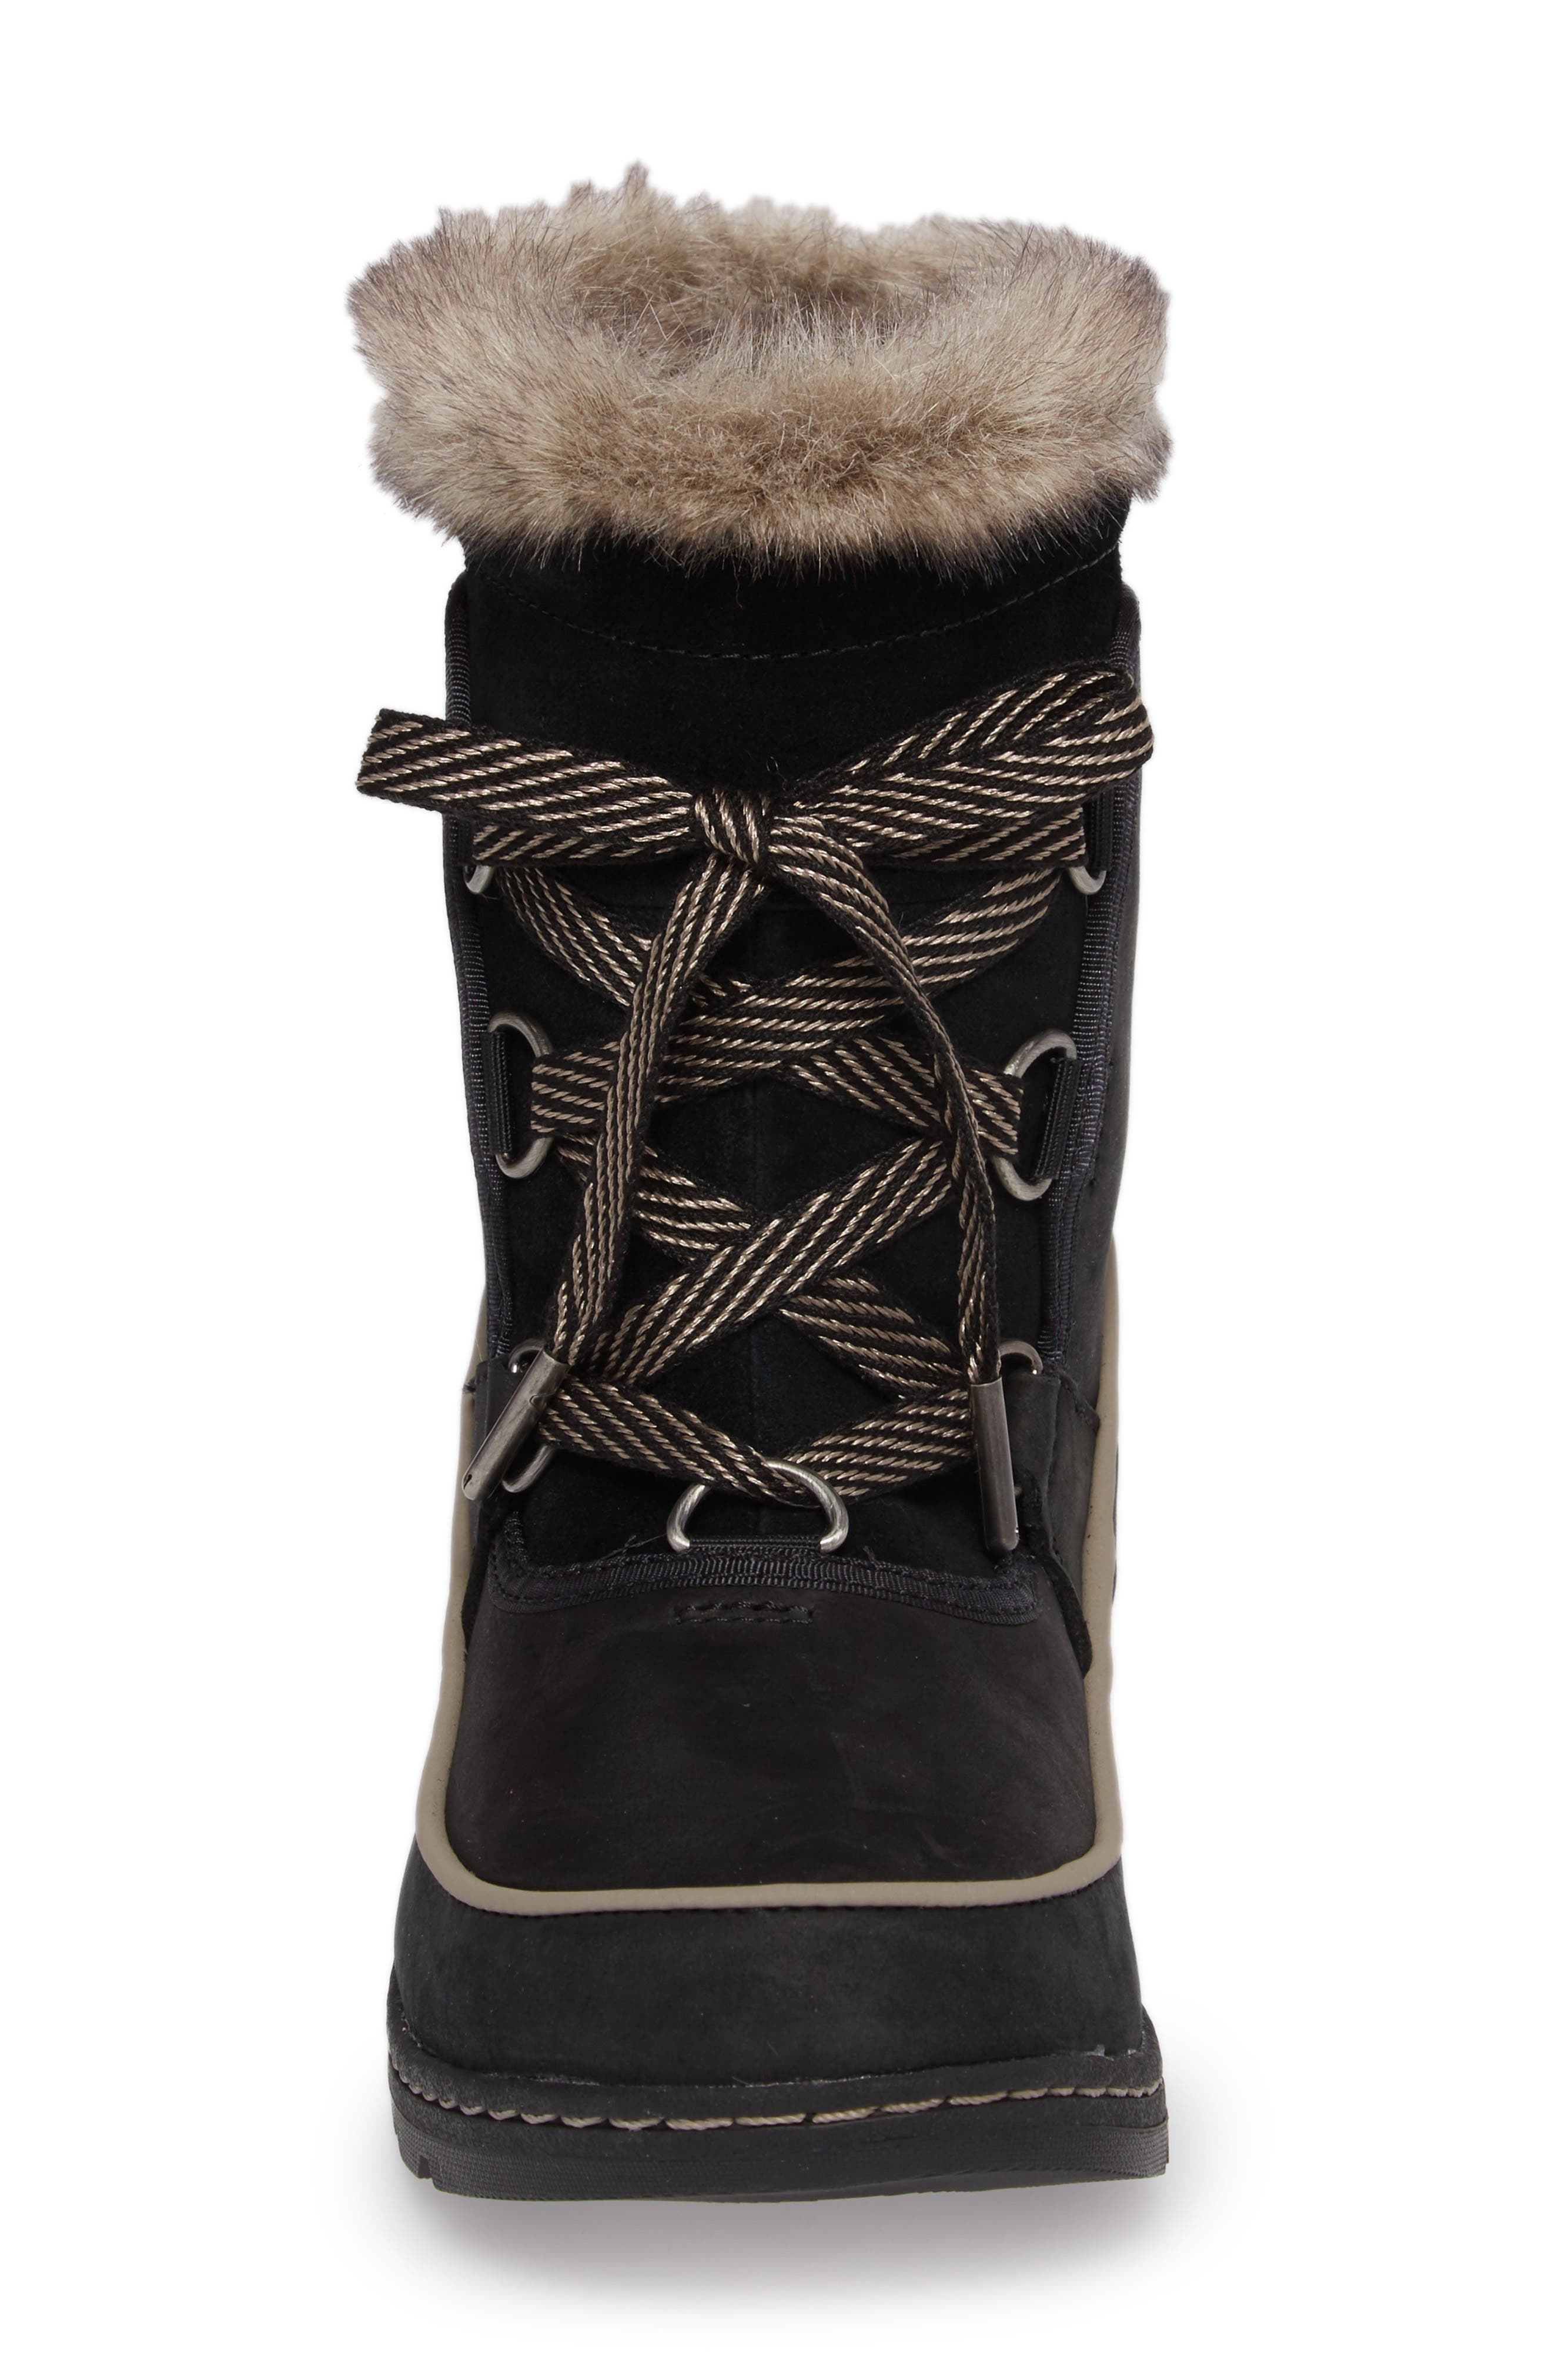 Tivoli II Insulated Winter Boot with Faux Fur Trim,                             Alternate thumbnail 4, color,                             Black/ Kettle